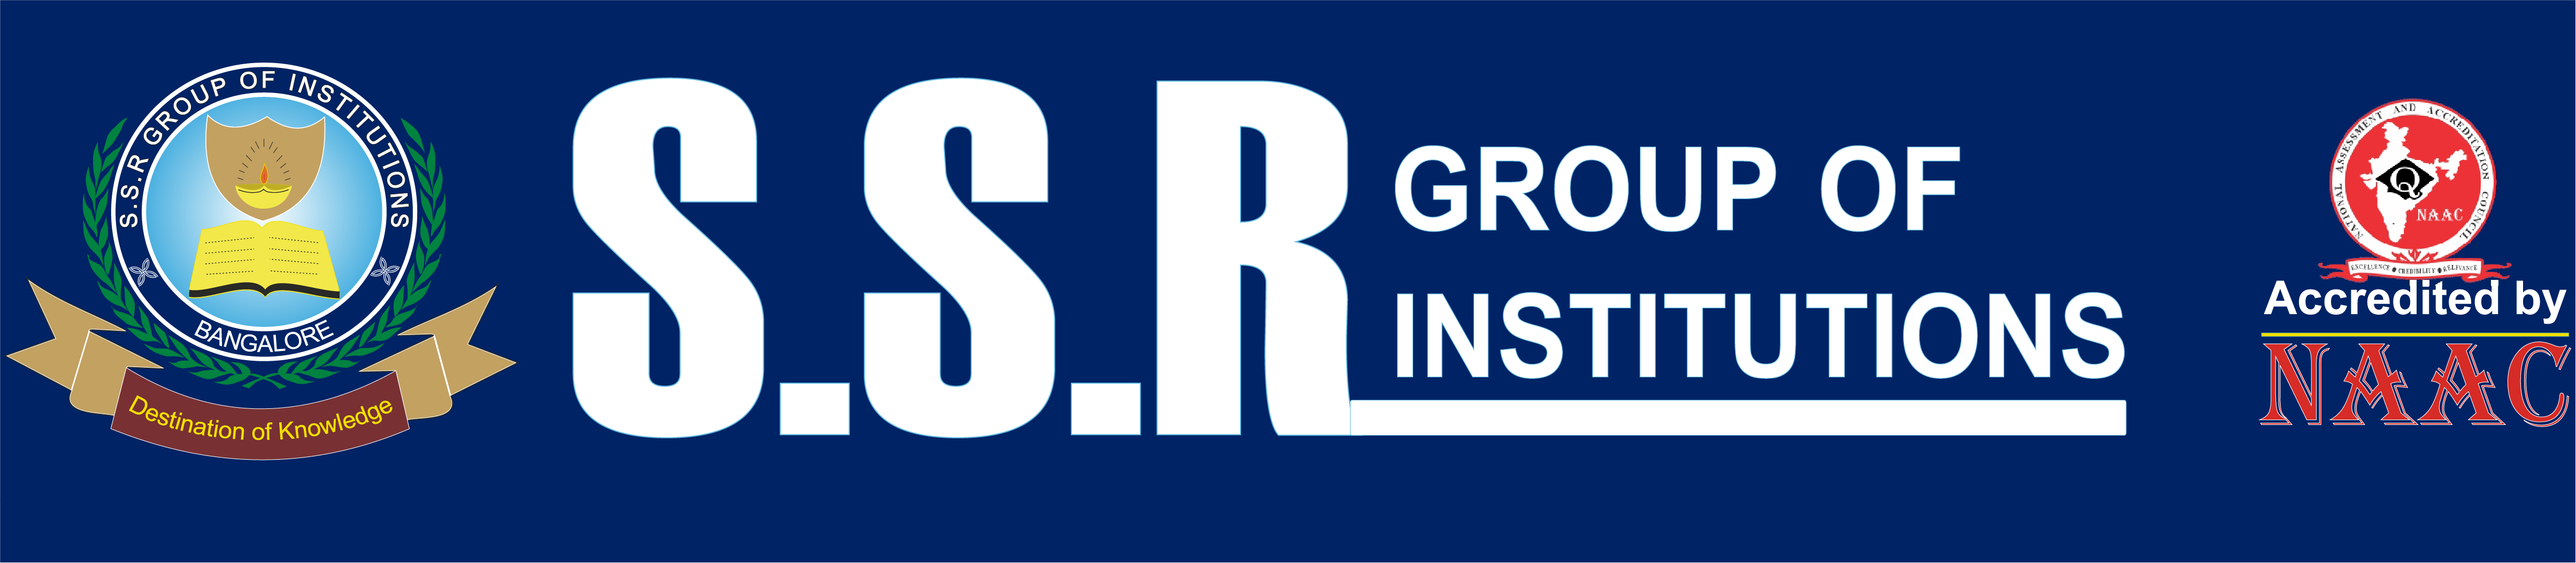 SSR GROUP OF INSTITUTIONS